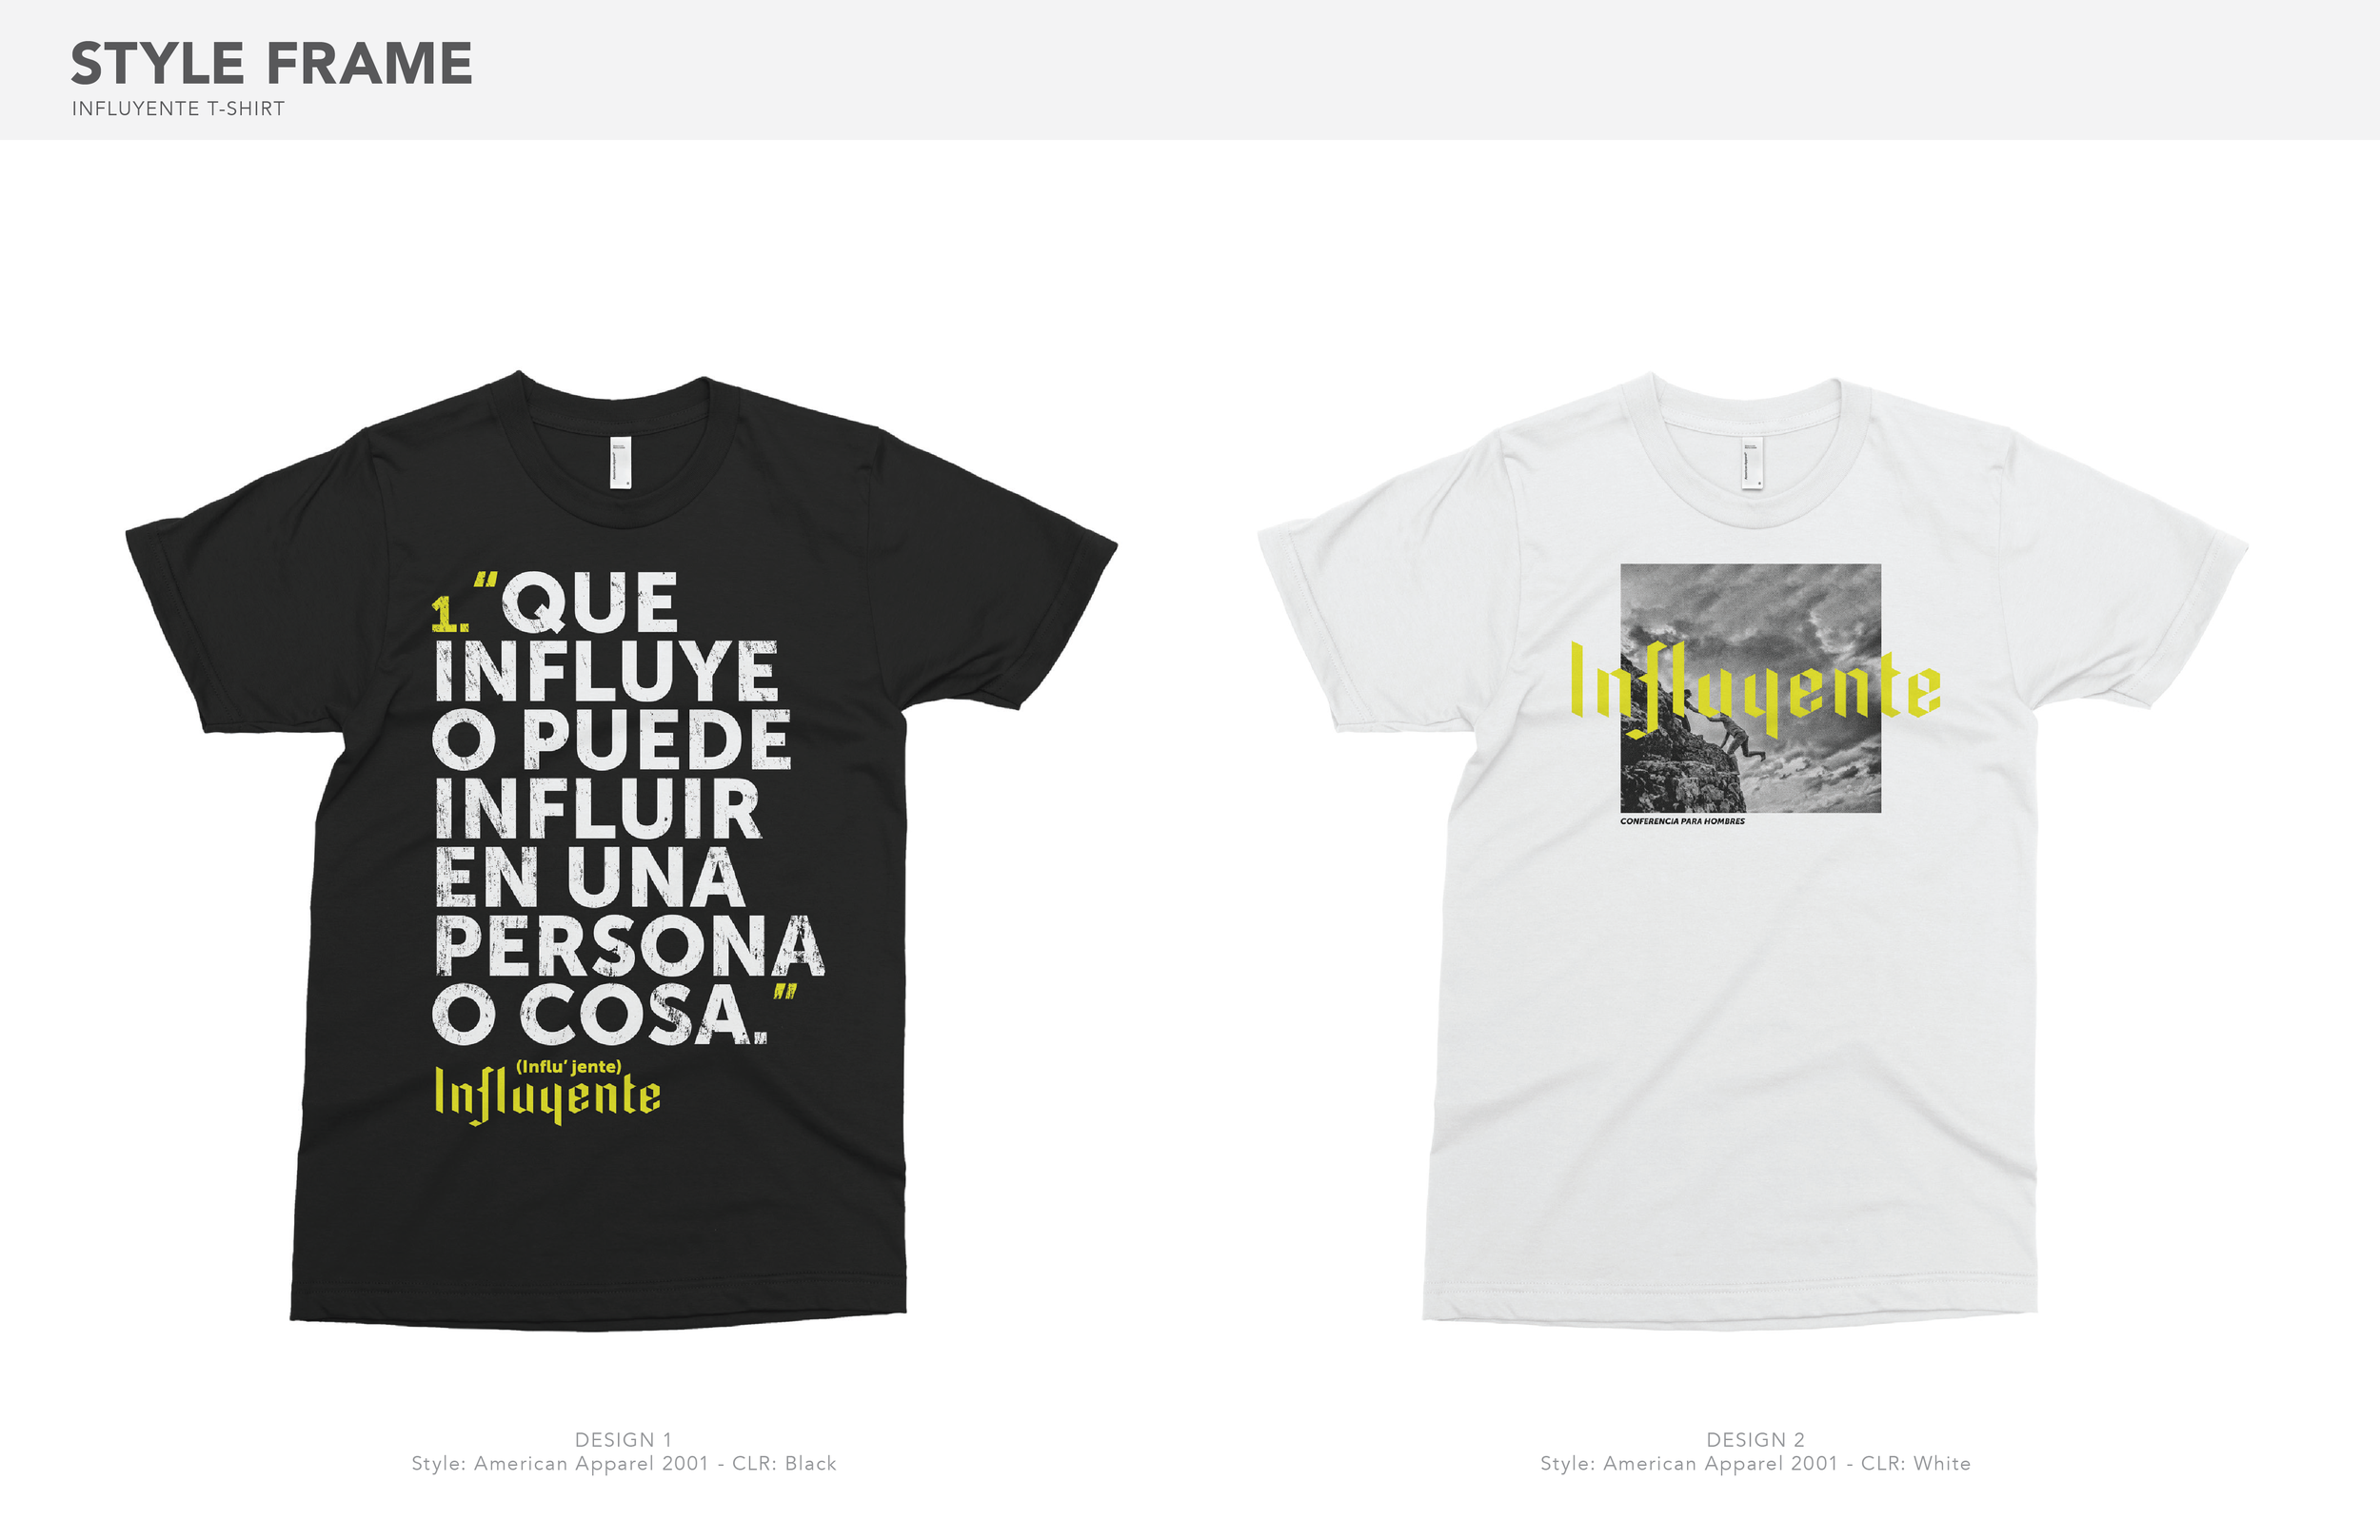 Influyente-Tshirt-StyleFrames_1-01.png